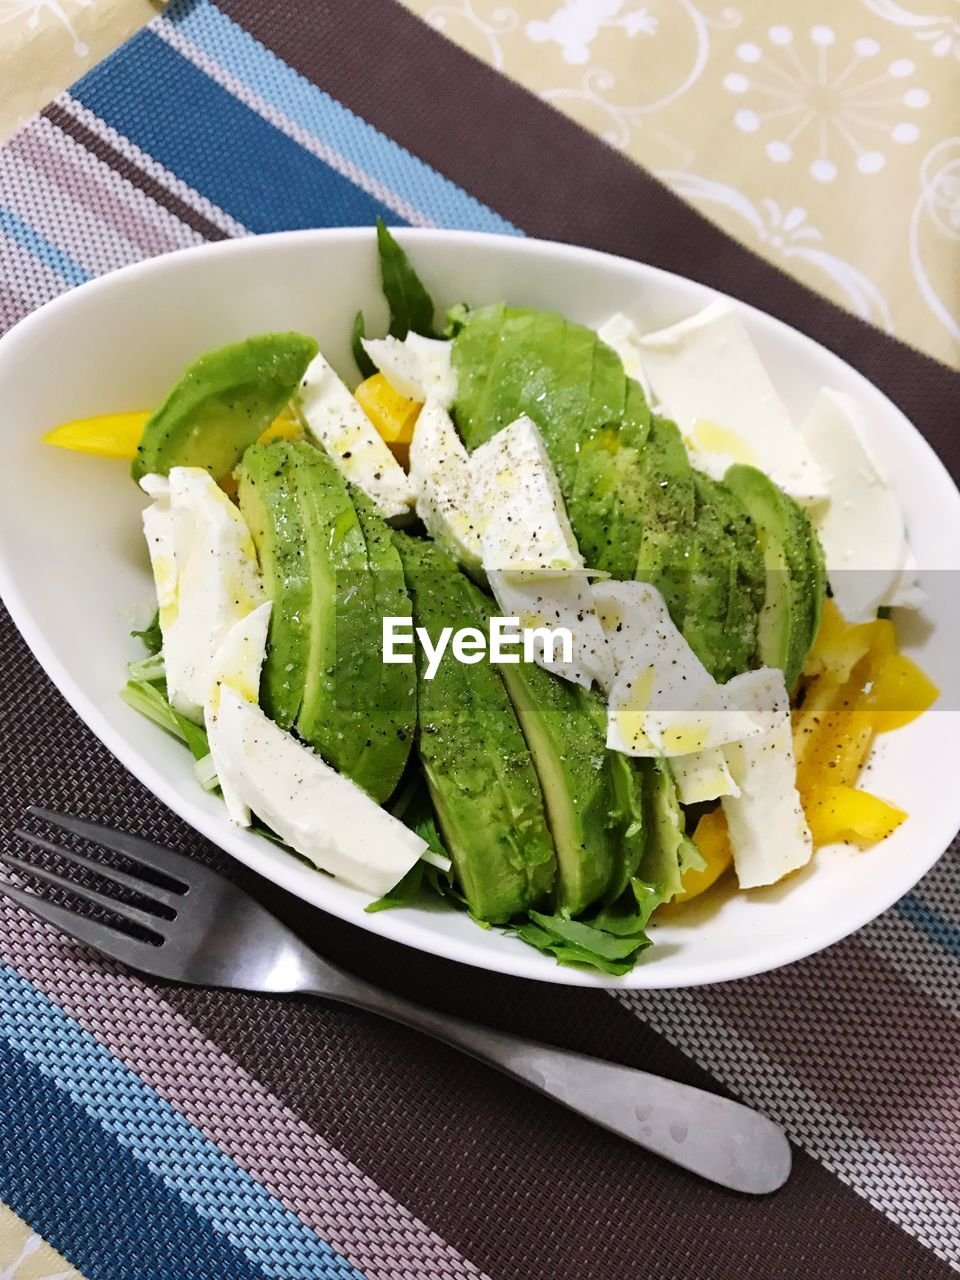 freshness, food and drink, healthy eating, plate, food, salad, no people, ready-to-eat, indoors, vegetable, close-up, feta cheese, greek food, day